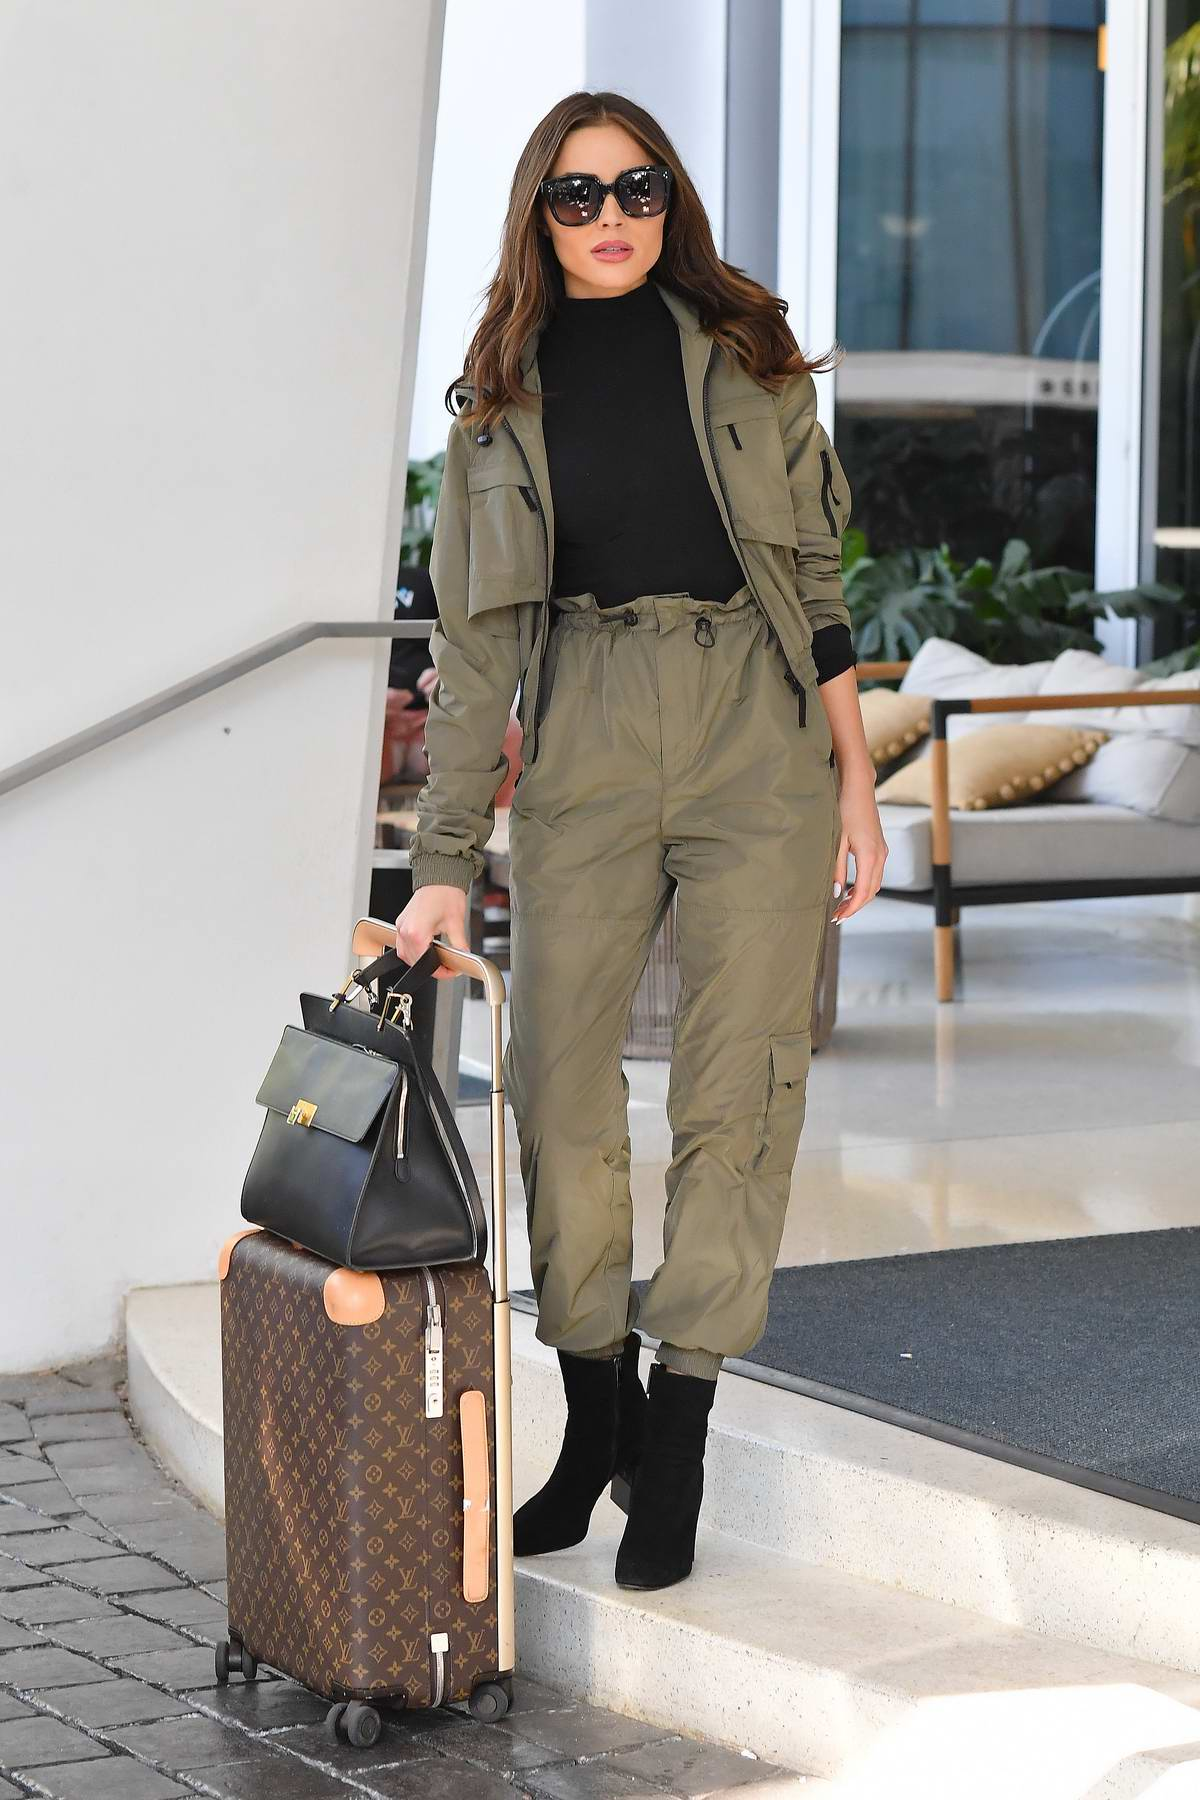 Olivia Culpo rocks an olive green jacket and matching pants as she leaves her hotel in Miami Beach, Florida